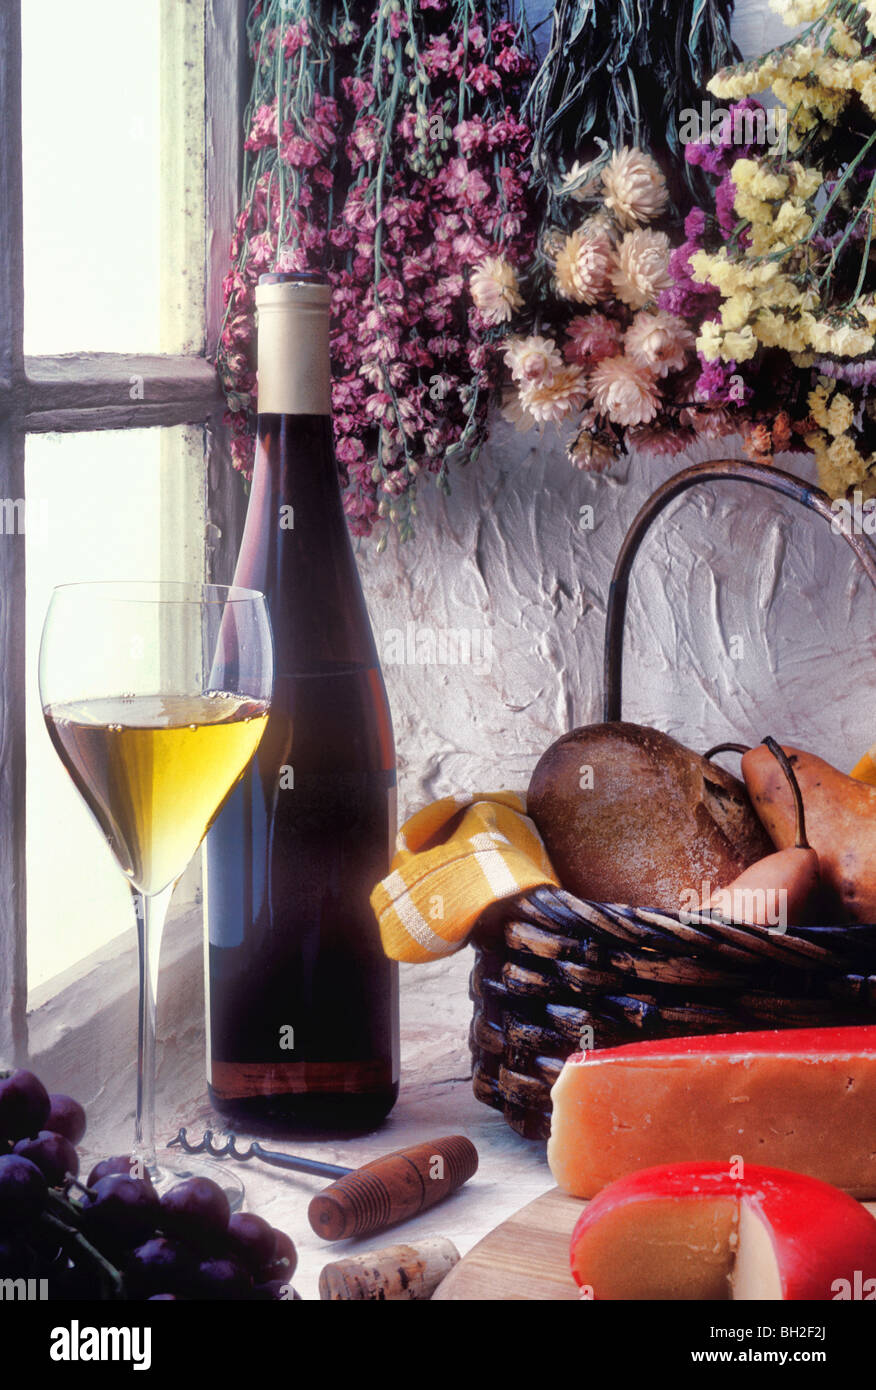 Wine bottle with glass in window - Stock Image